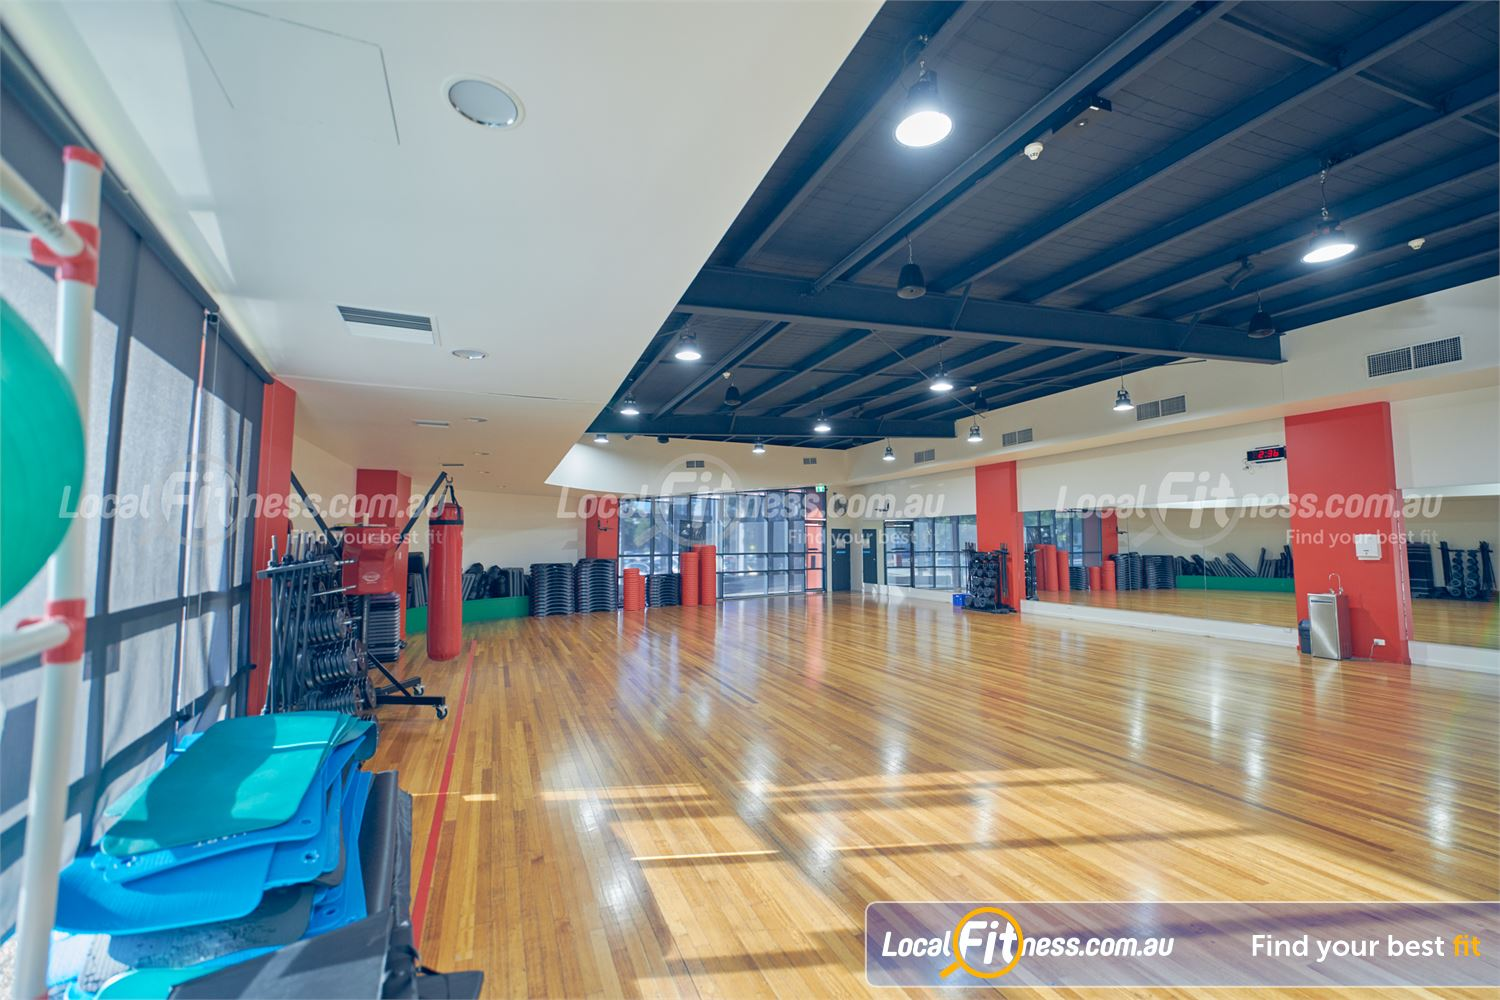 Maribyrnong Aquatic Centre Maribyrnong The spacious Maribyrnong group fitness studio.